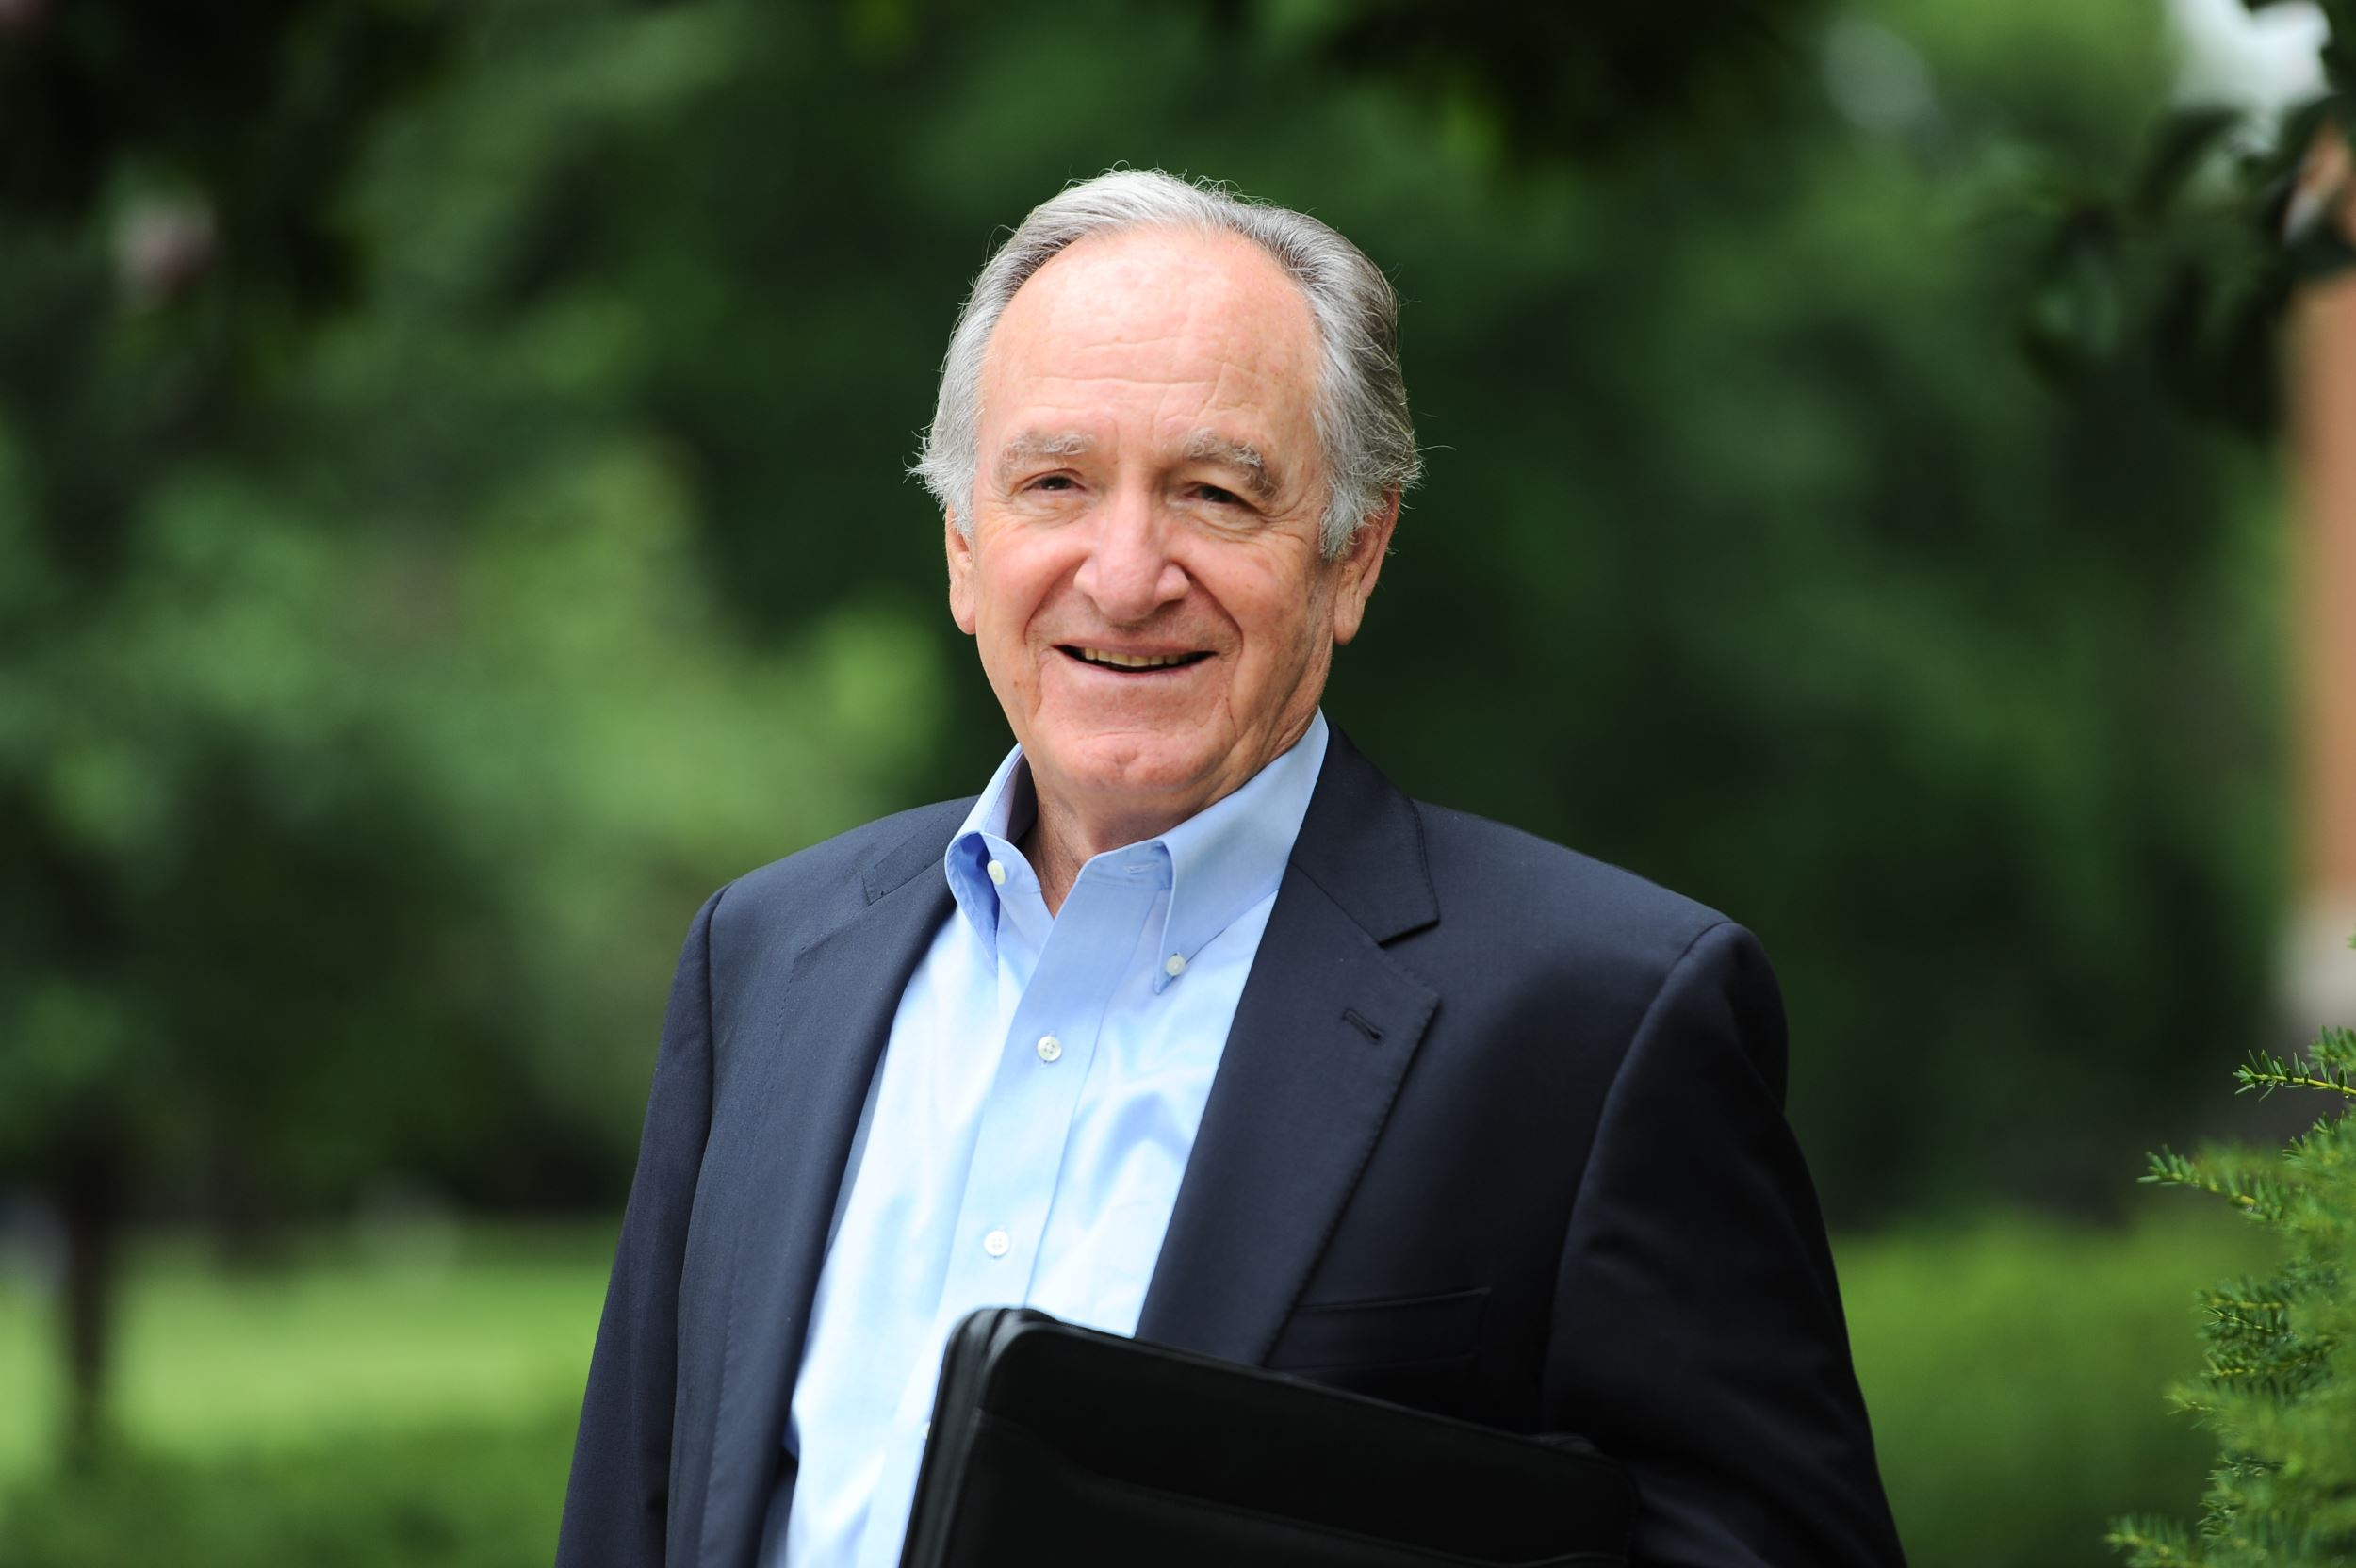 Sen. Tom Harkin to deliver keynote at 5-2-1-0 Healthy Choices Count! Summit